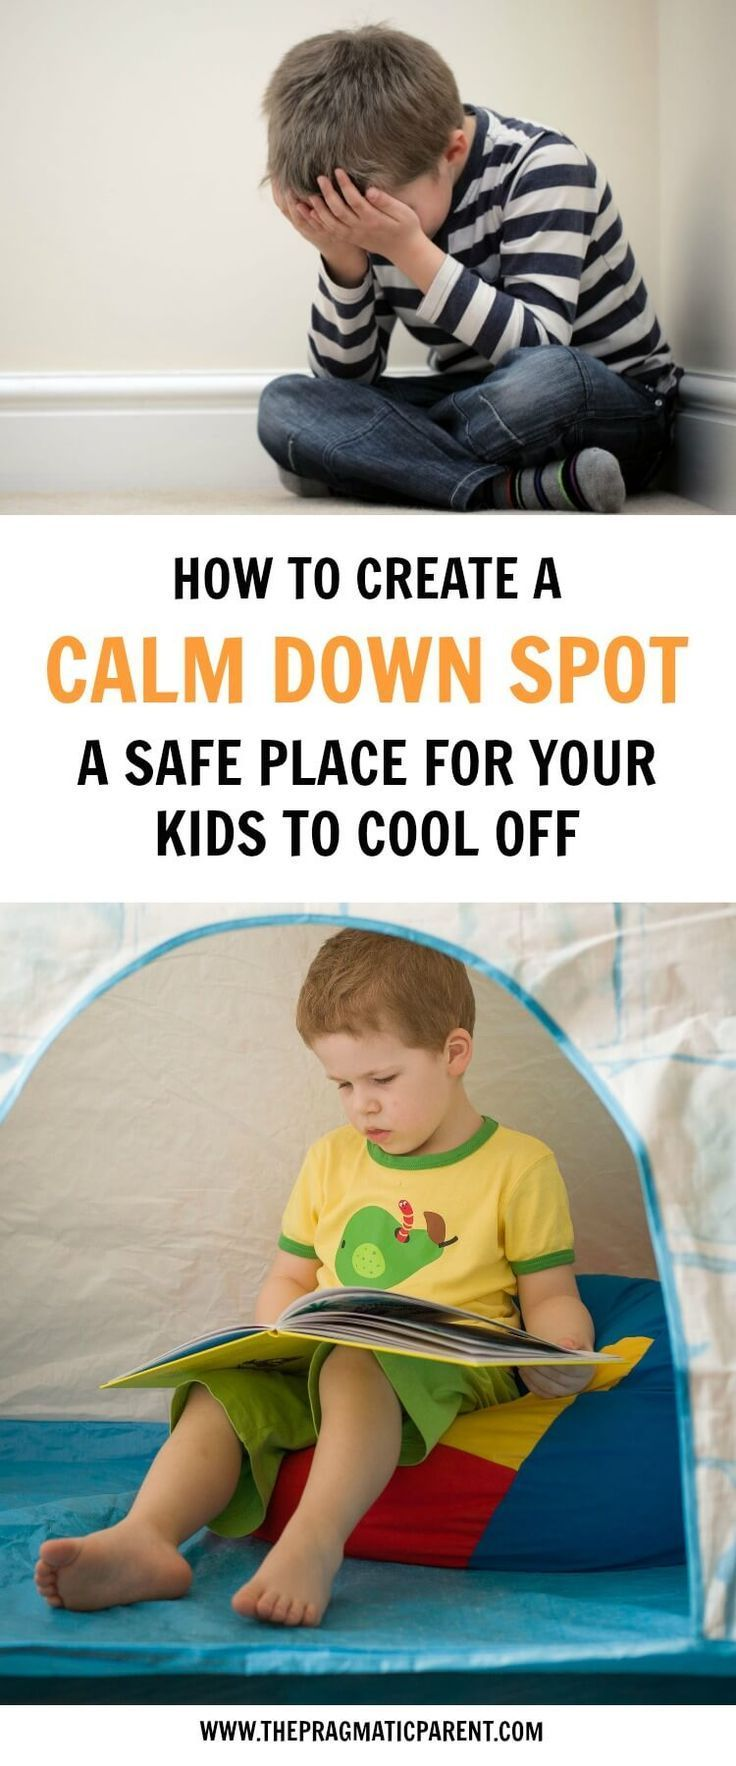 Help your child to calm down & manage their emotions with a dedicated cool off spot. A quiet environment for them to get the calm sensory input they need to calm down. #calmdownspot #quietcorner #calmdown #controlemotions #positiveparenting